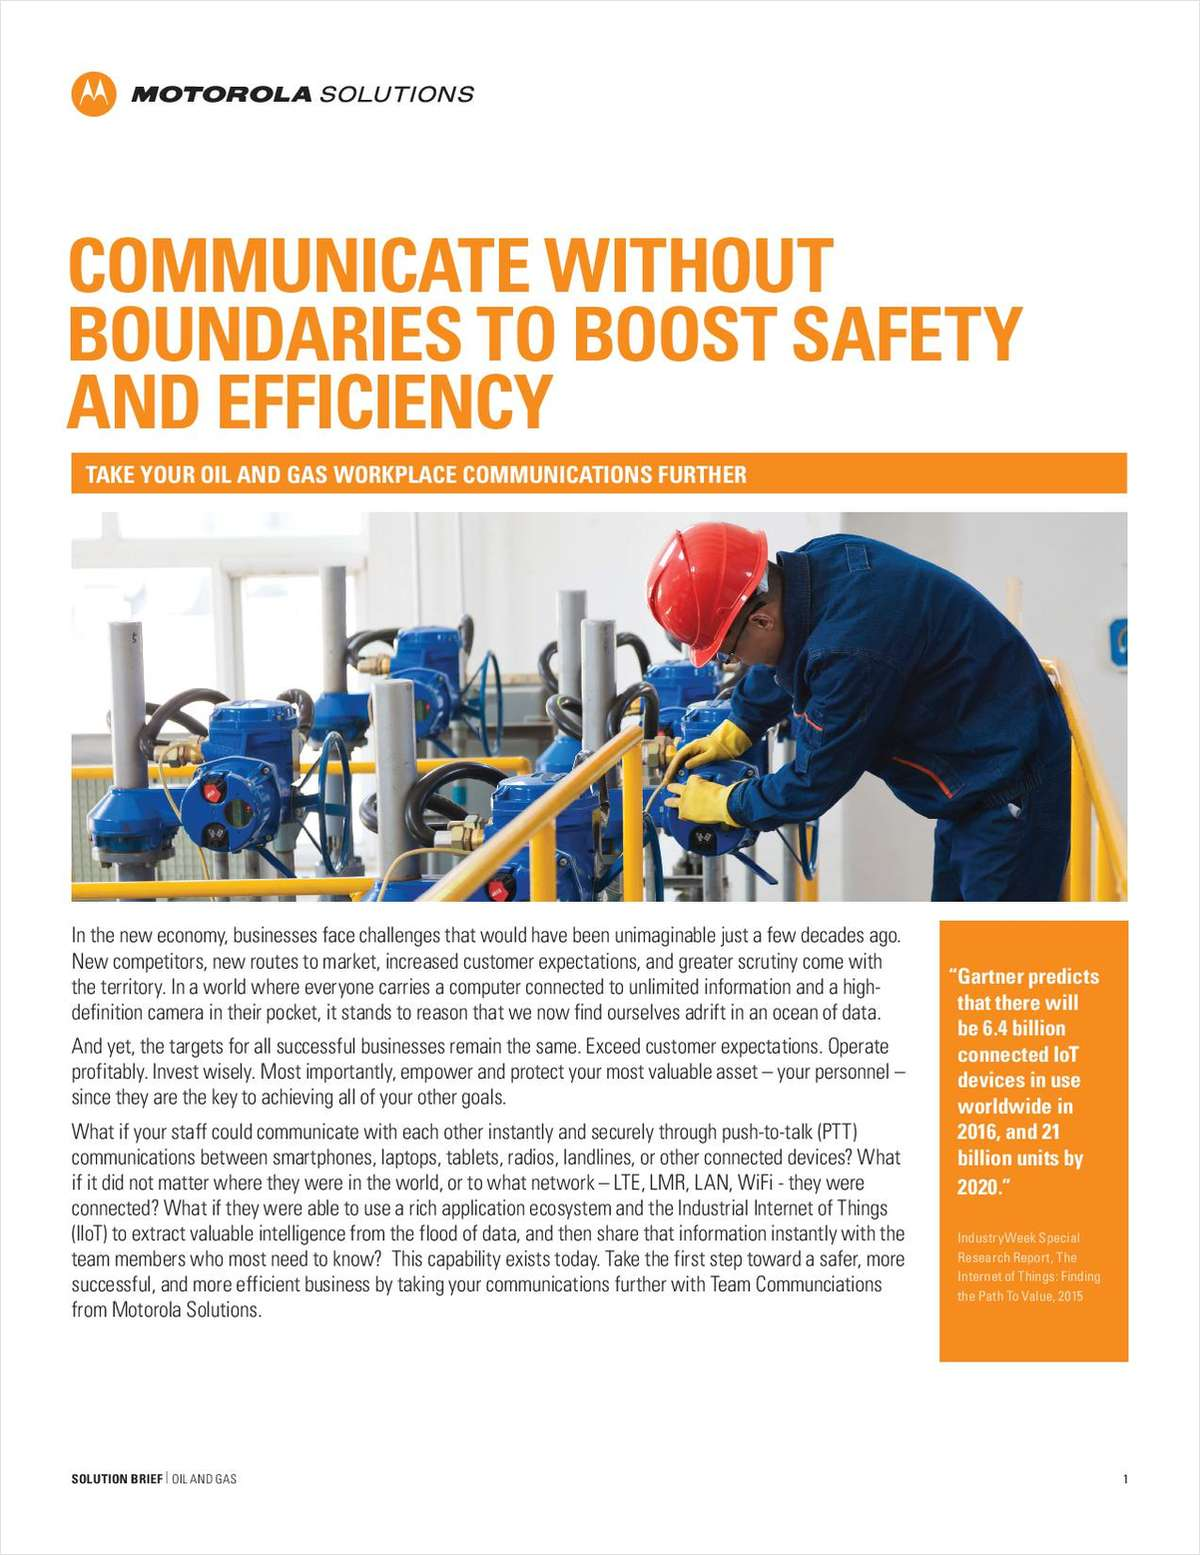 Communicate Without Boundaries to Boost Safety and Efficiency